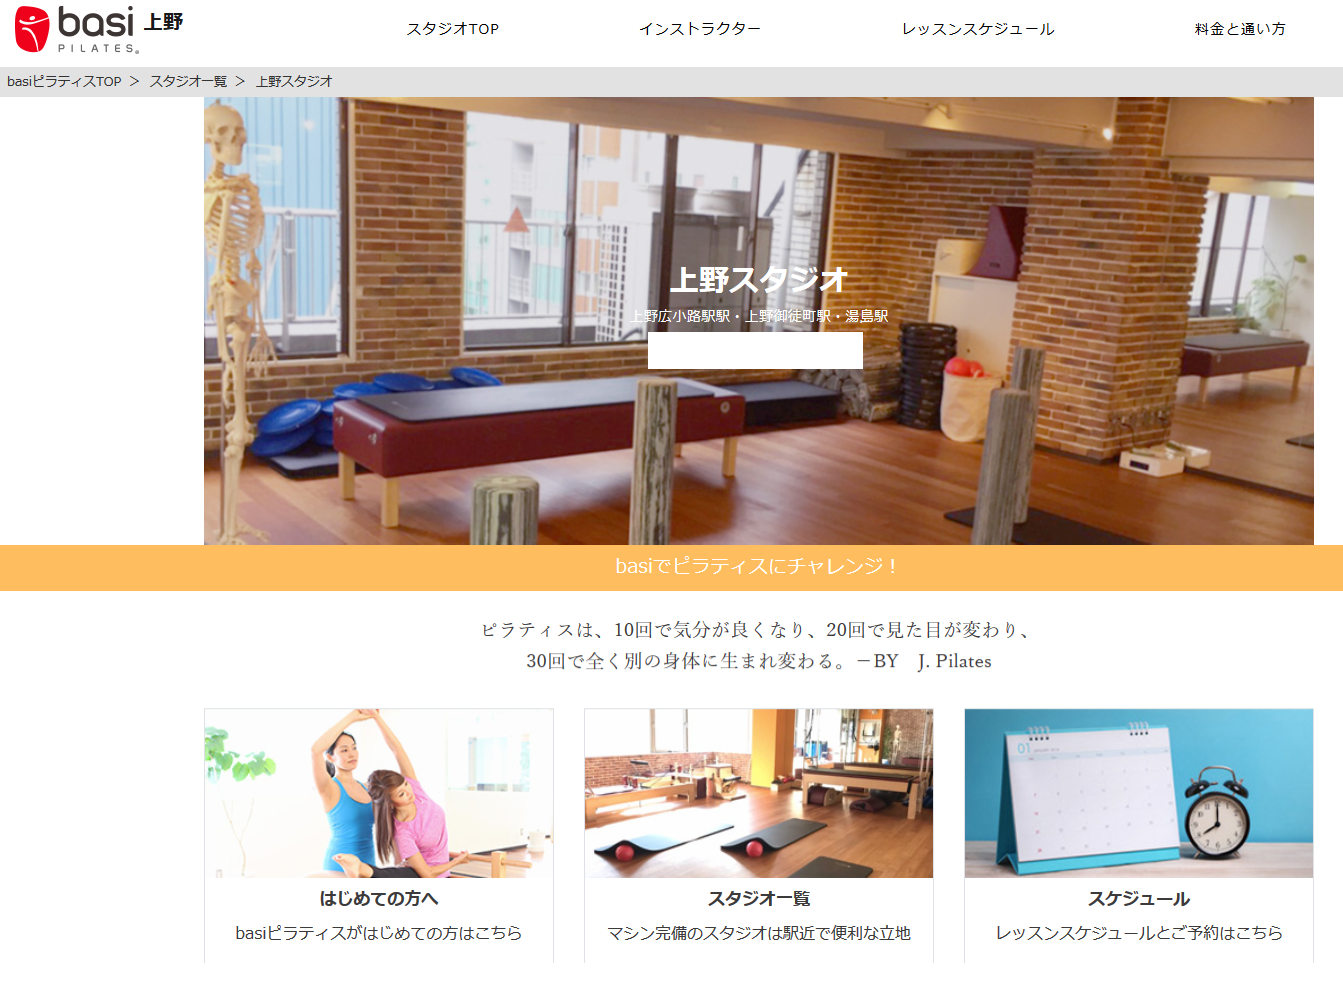 zen place pilates by basi pilates上野スタジオキャプチャ